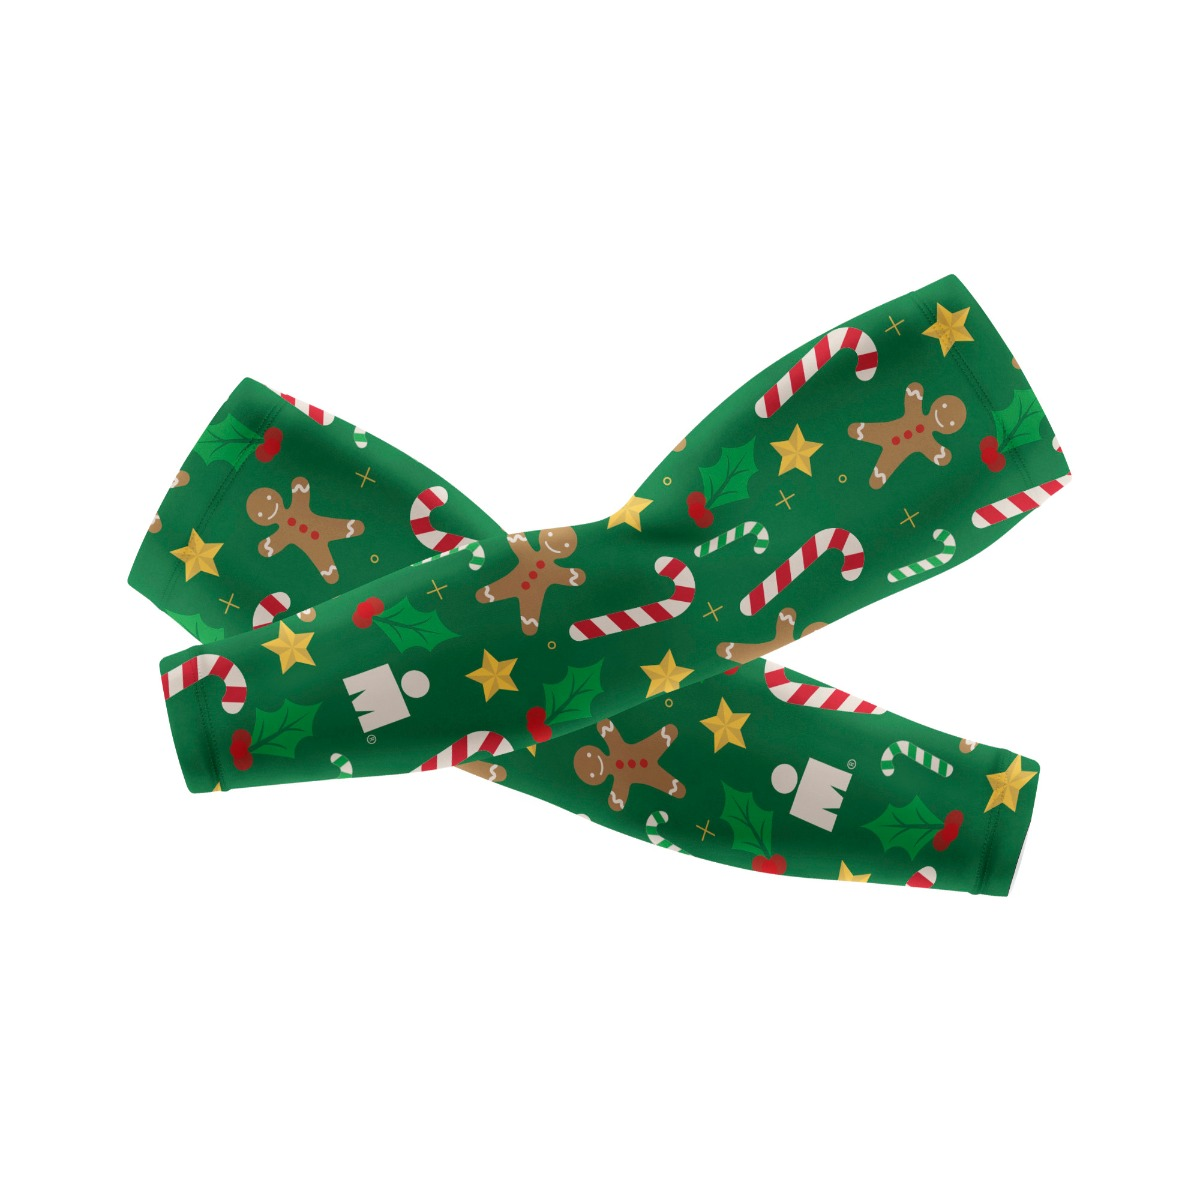 IRONMAN Arm Sleeves - Holiday Sweets Green